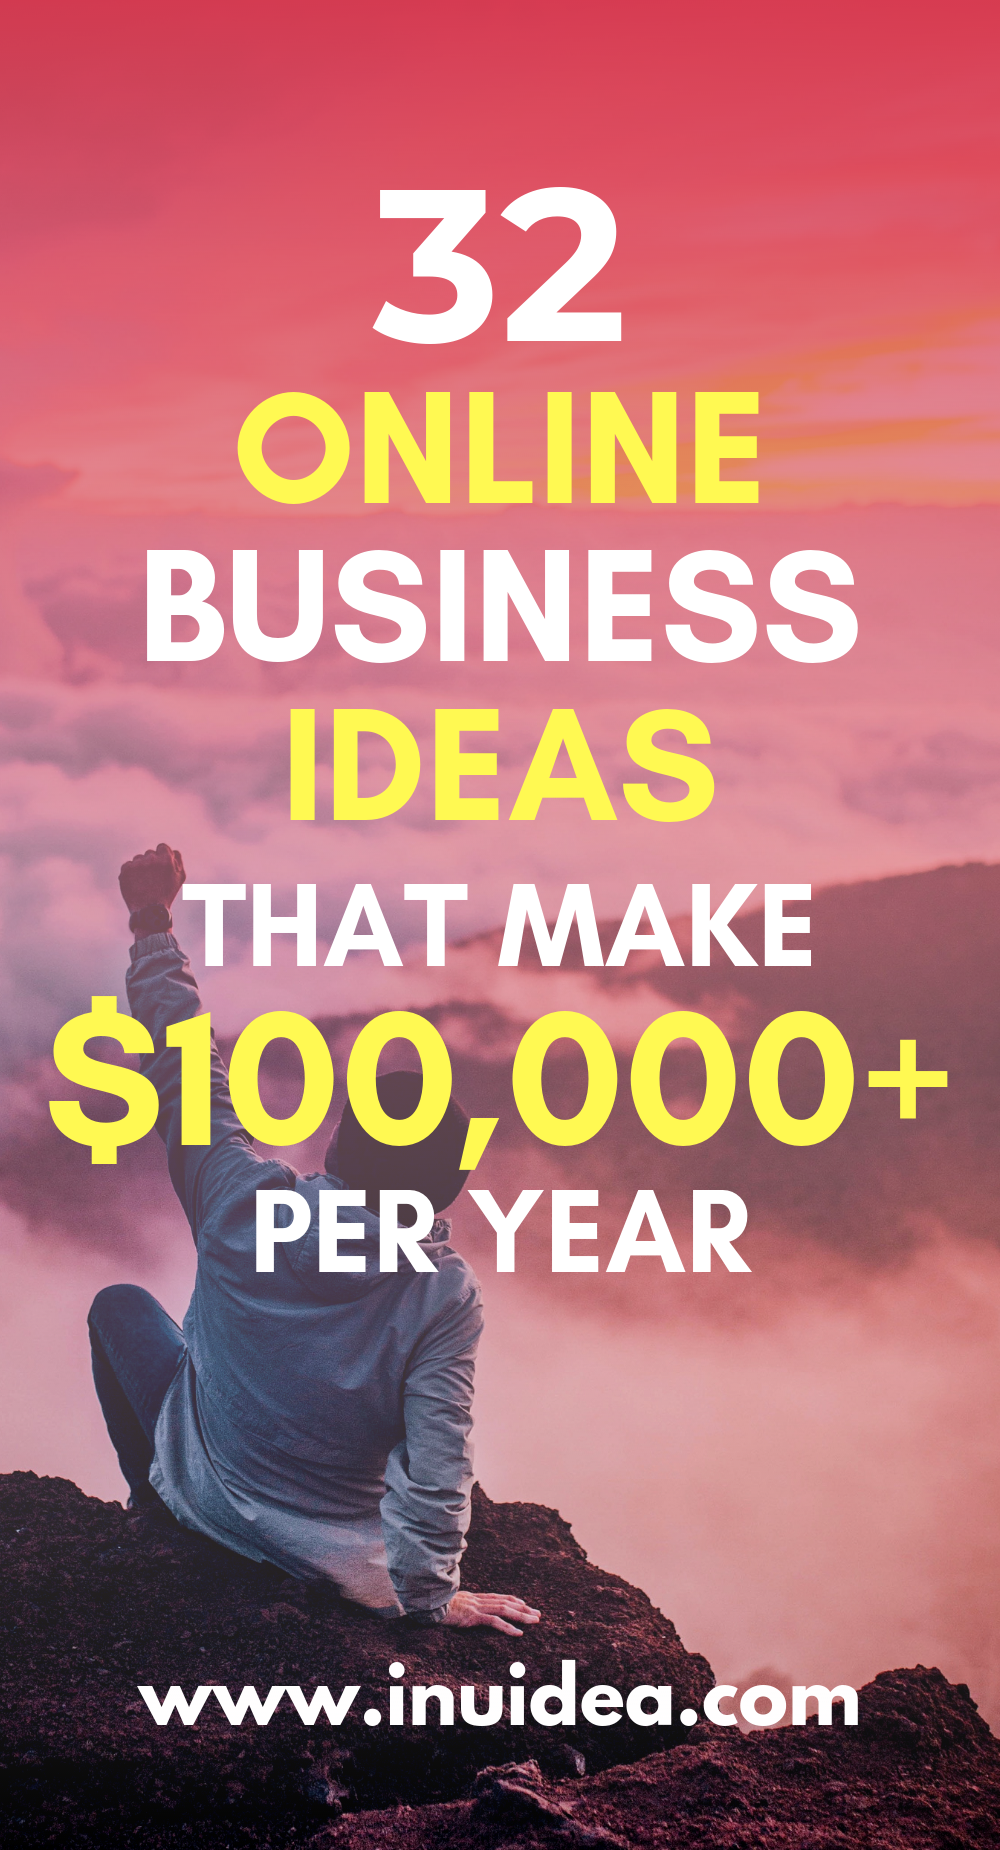 31+ Proven Online business Ideas That Work in 2019 (In-Depth Article + Free Consulting)